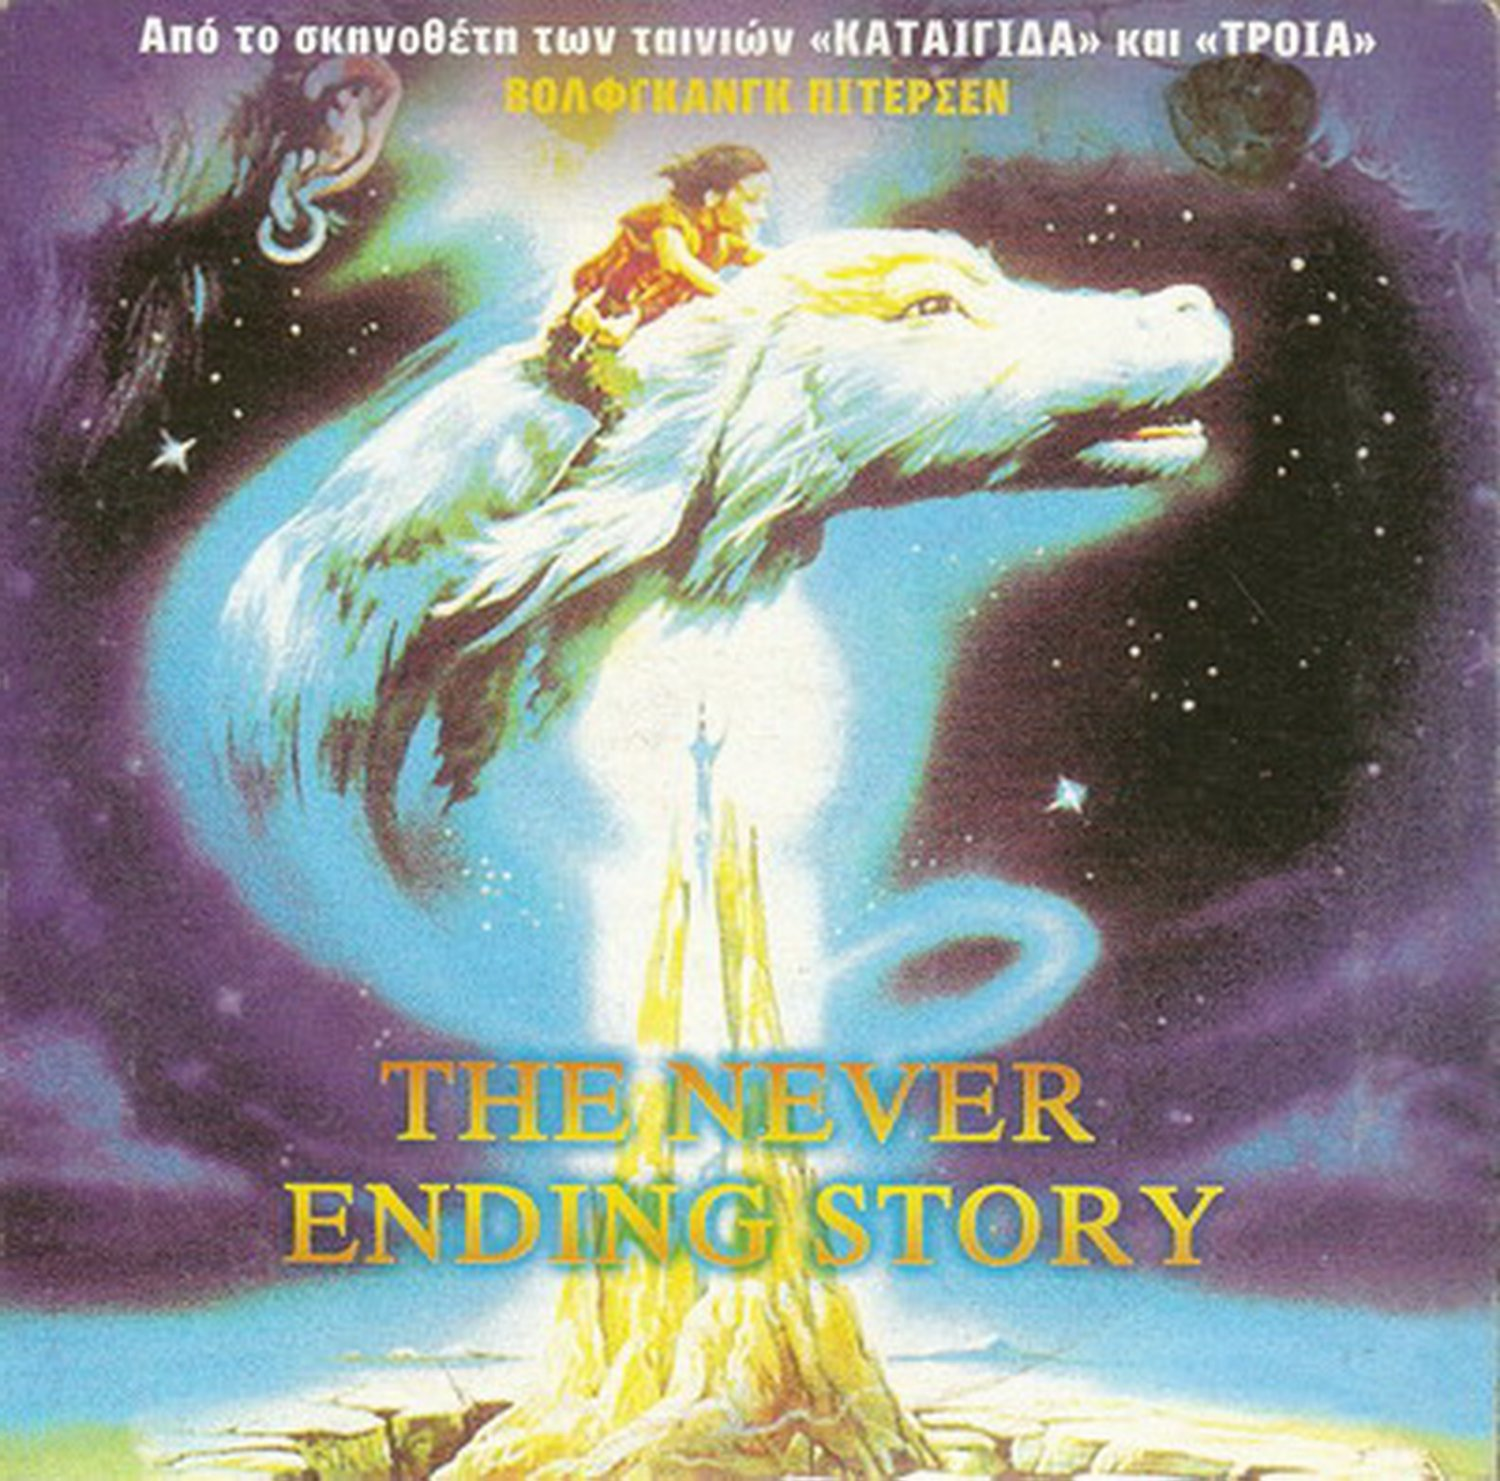 THE NEVERENDING STORY Noah Hathaway Barret Oliver Tami Stronach R2 DVD